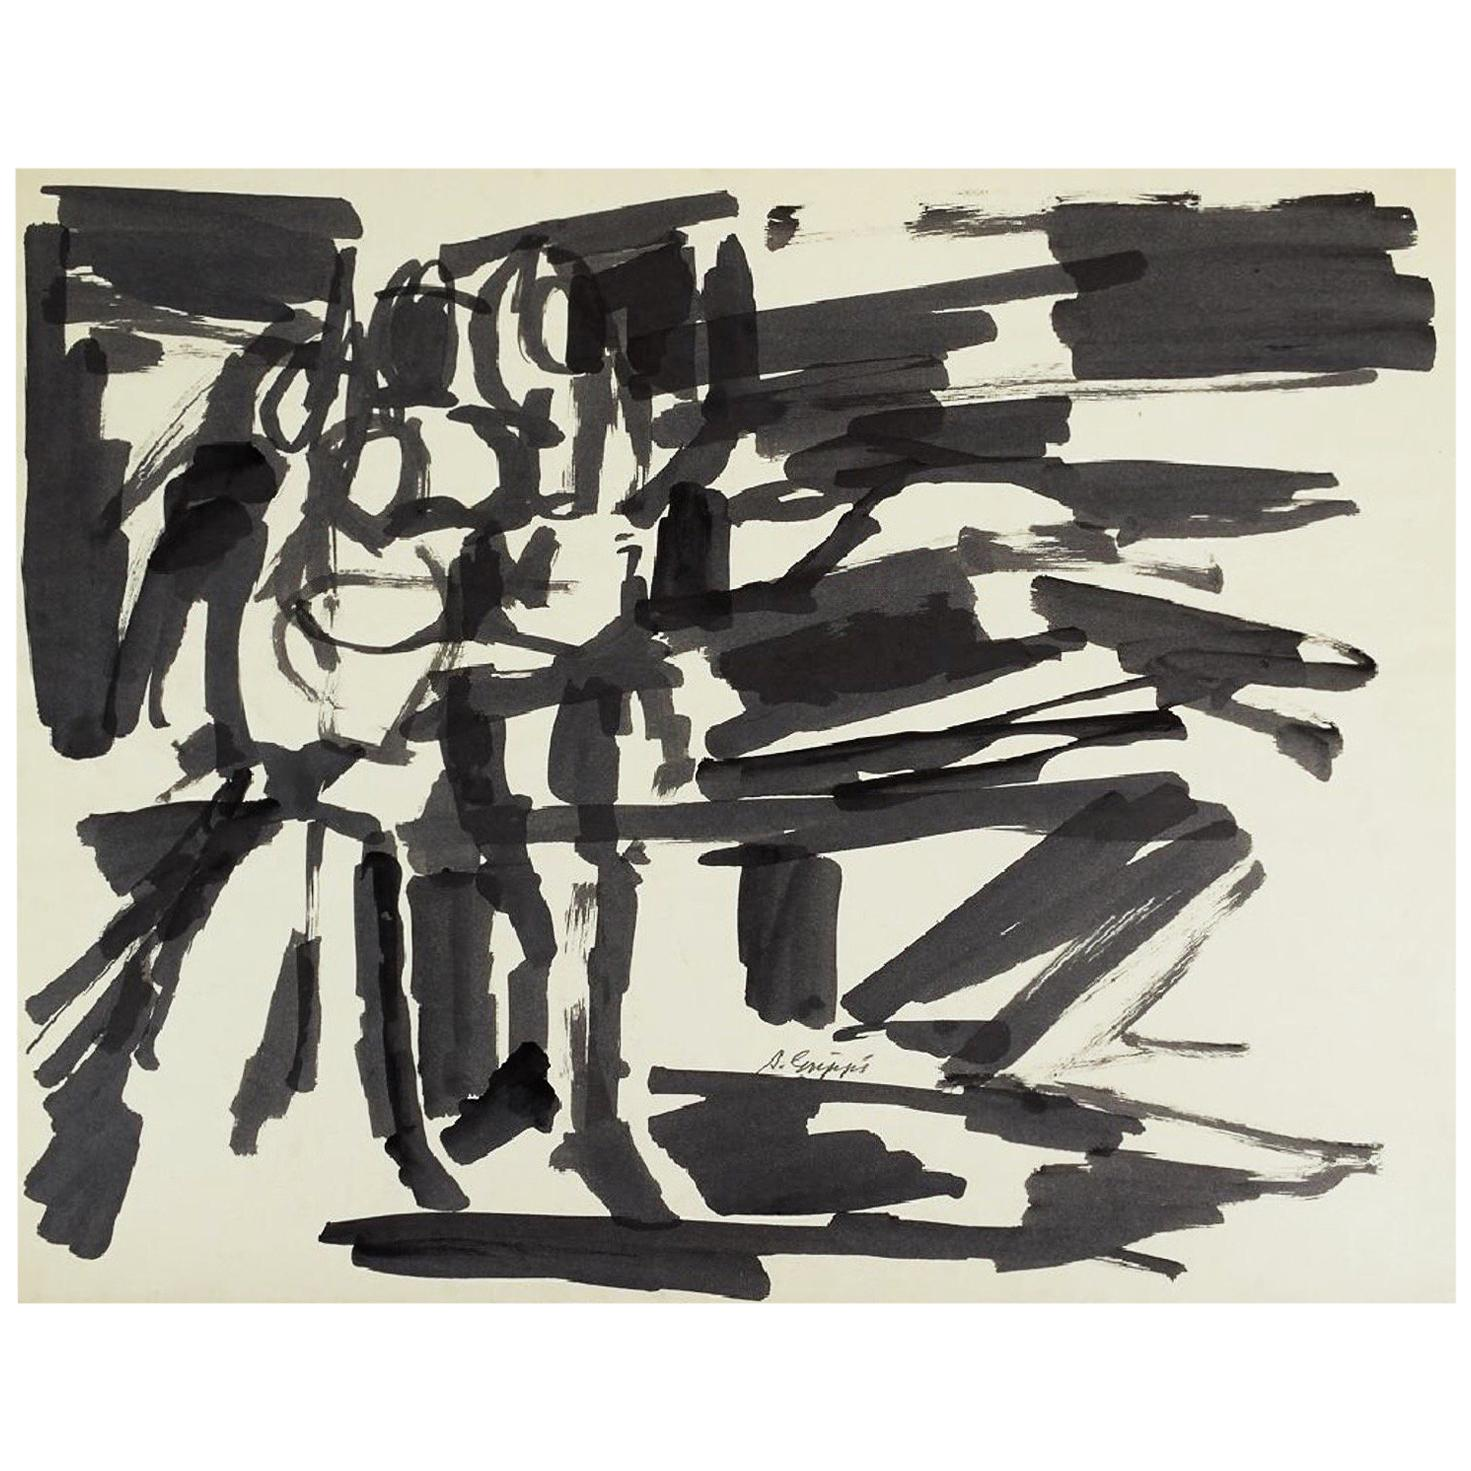 Abstract Action Painting, Black & White Pen & Ink on paper by Salvatore Grippi